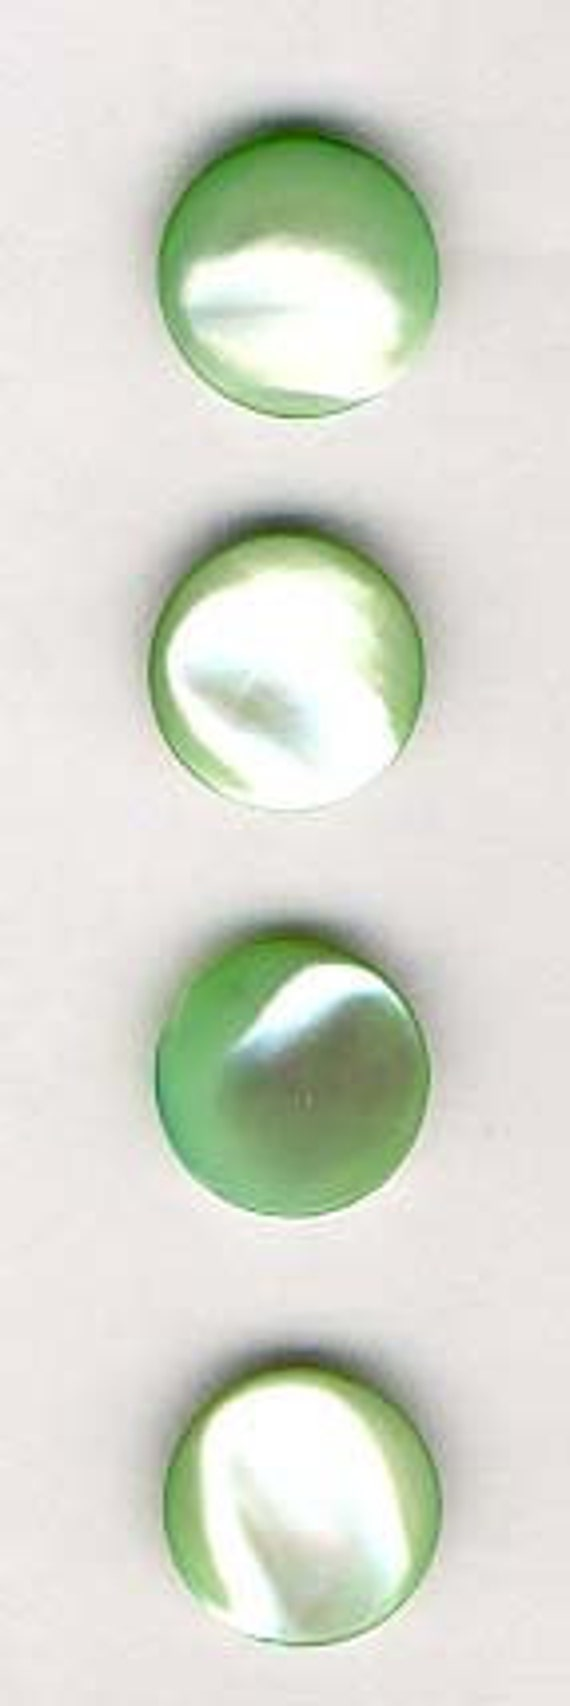 Set of 4 Green Mother of Pearl  Buttons